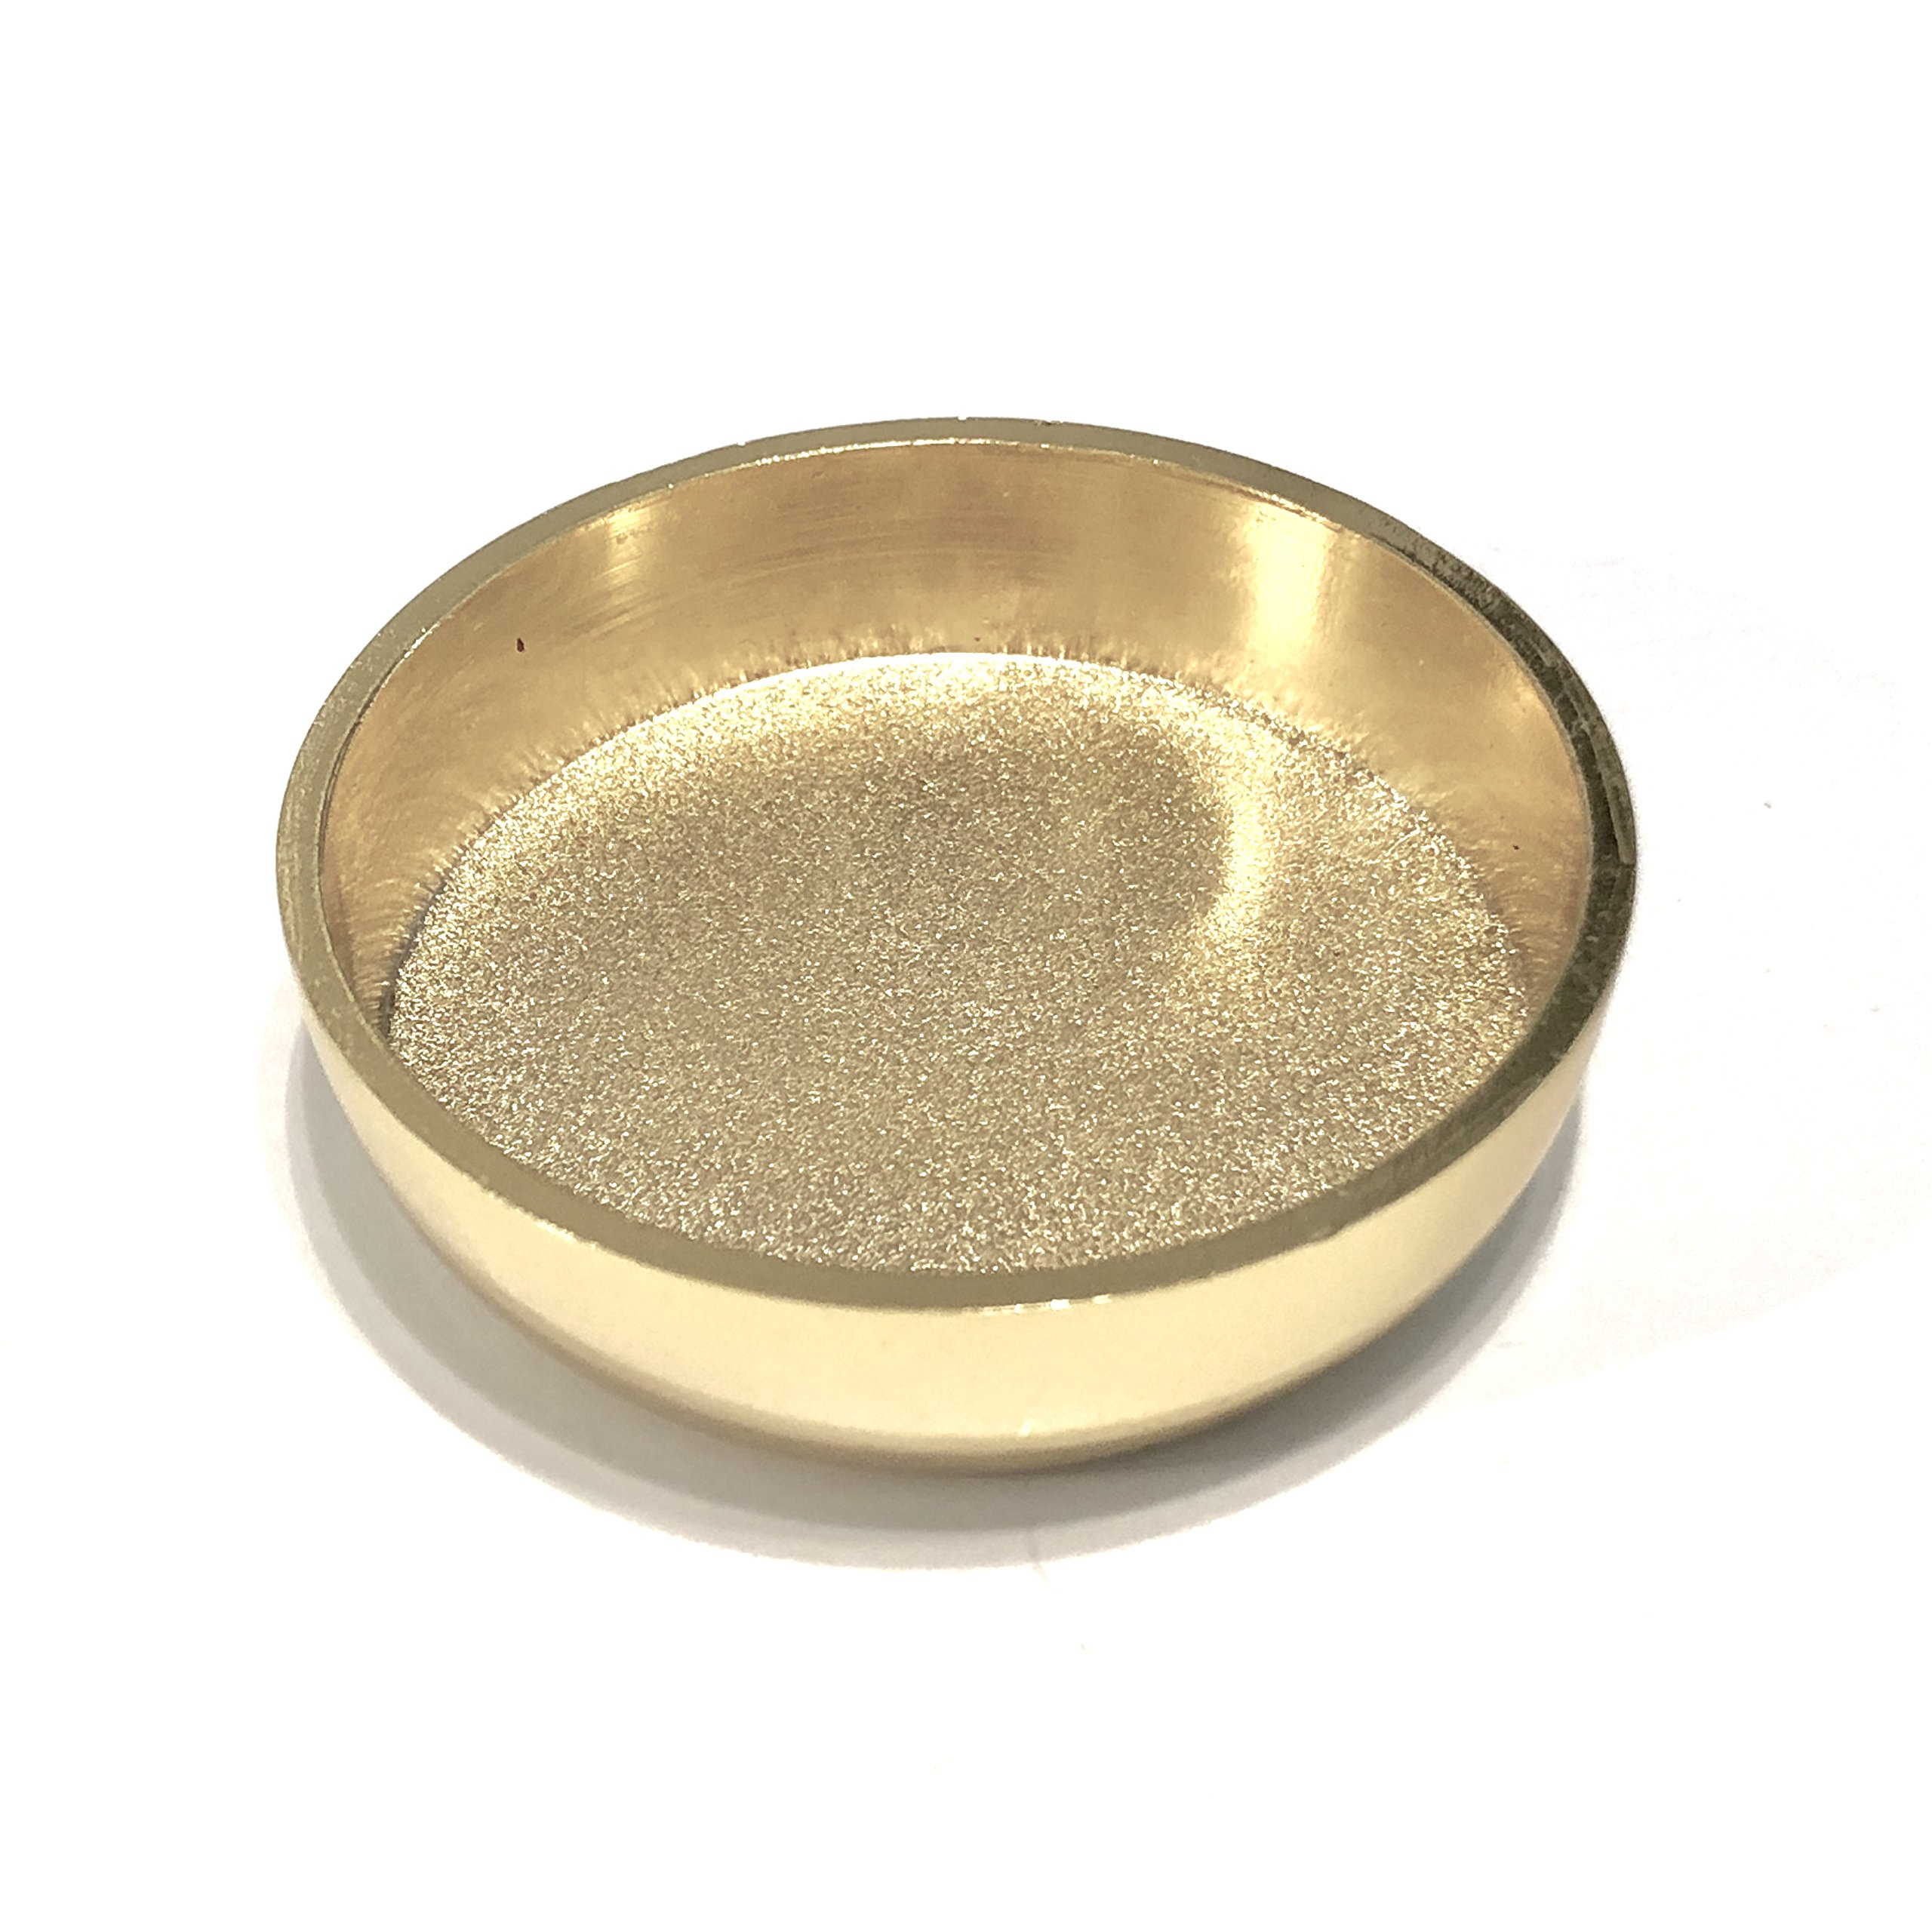 Andustrial Steel - 2'' Brass Heavy Duty Caster Cup with Wool Felt Pad - Best for Grand Piano, Heavy Furniture, Steel Safe, Dinning Tables, Rugs, Carpets and Expensive Floors – (Brass, 1 Piece)